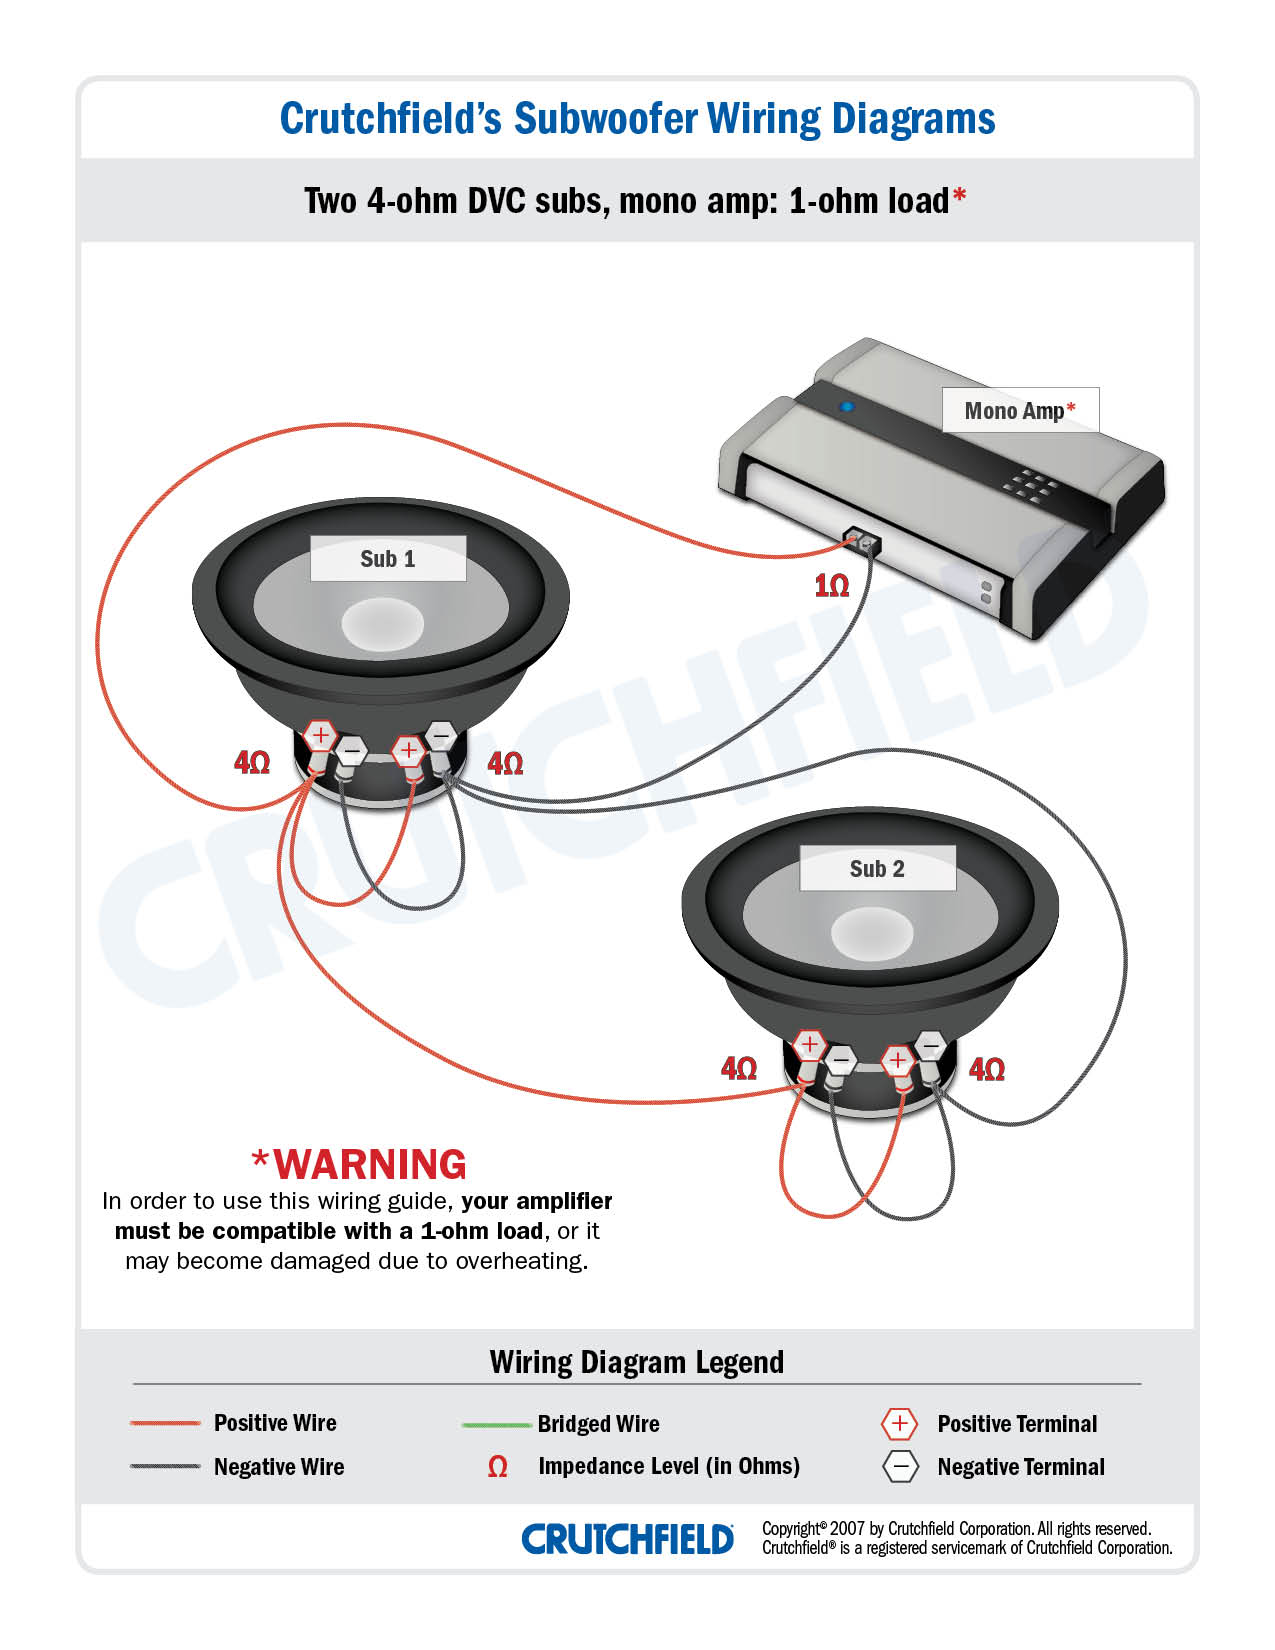 Subwoofer Wiring Diagrams How To Wire Your Subs Em In Case The 4 Ohm Scheme Is Only Safe Way Connect That Gear Together